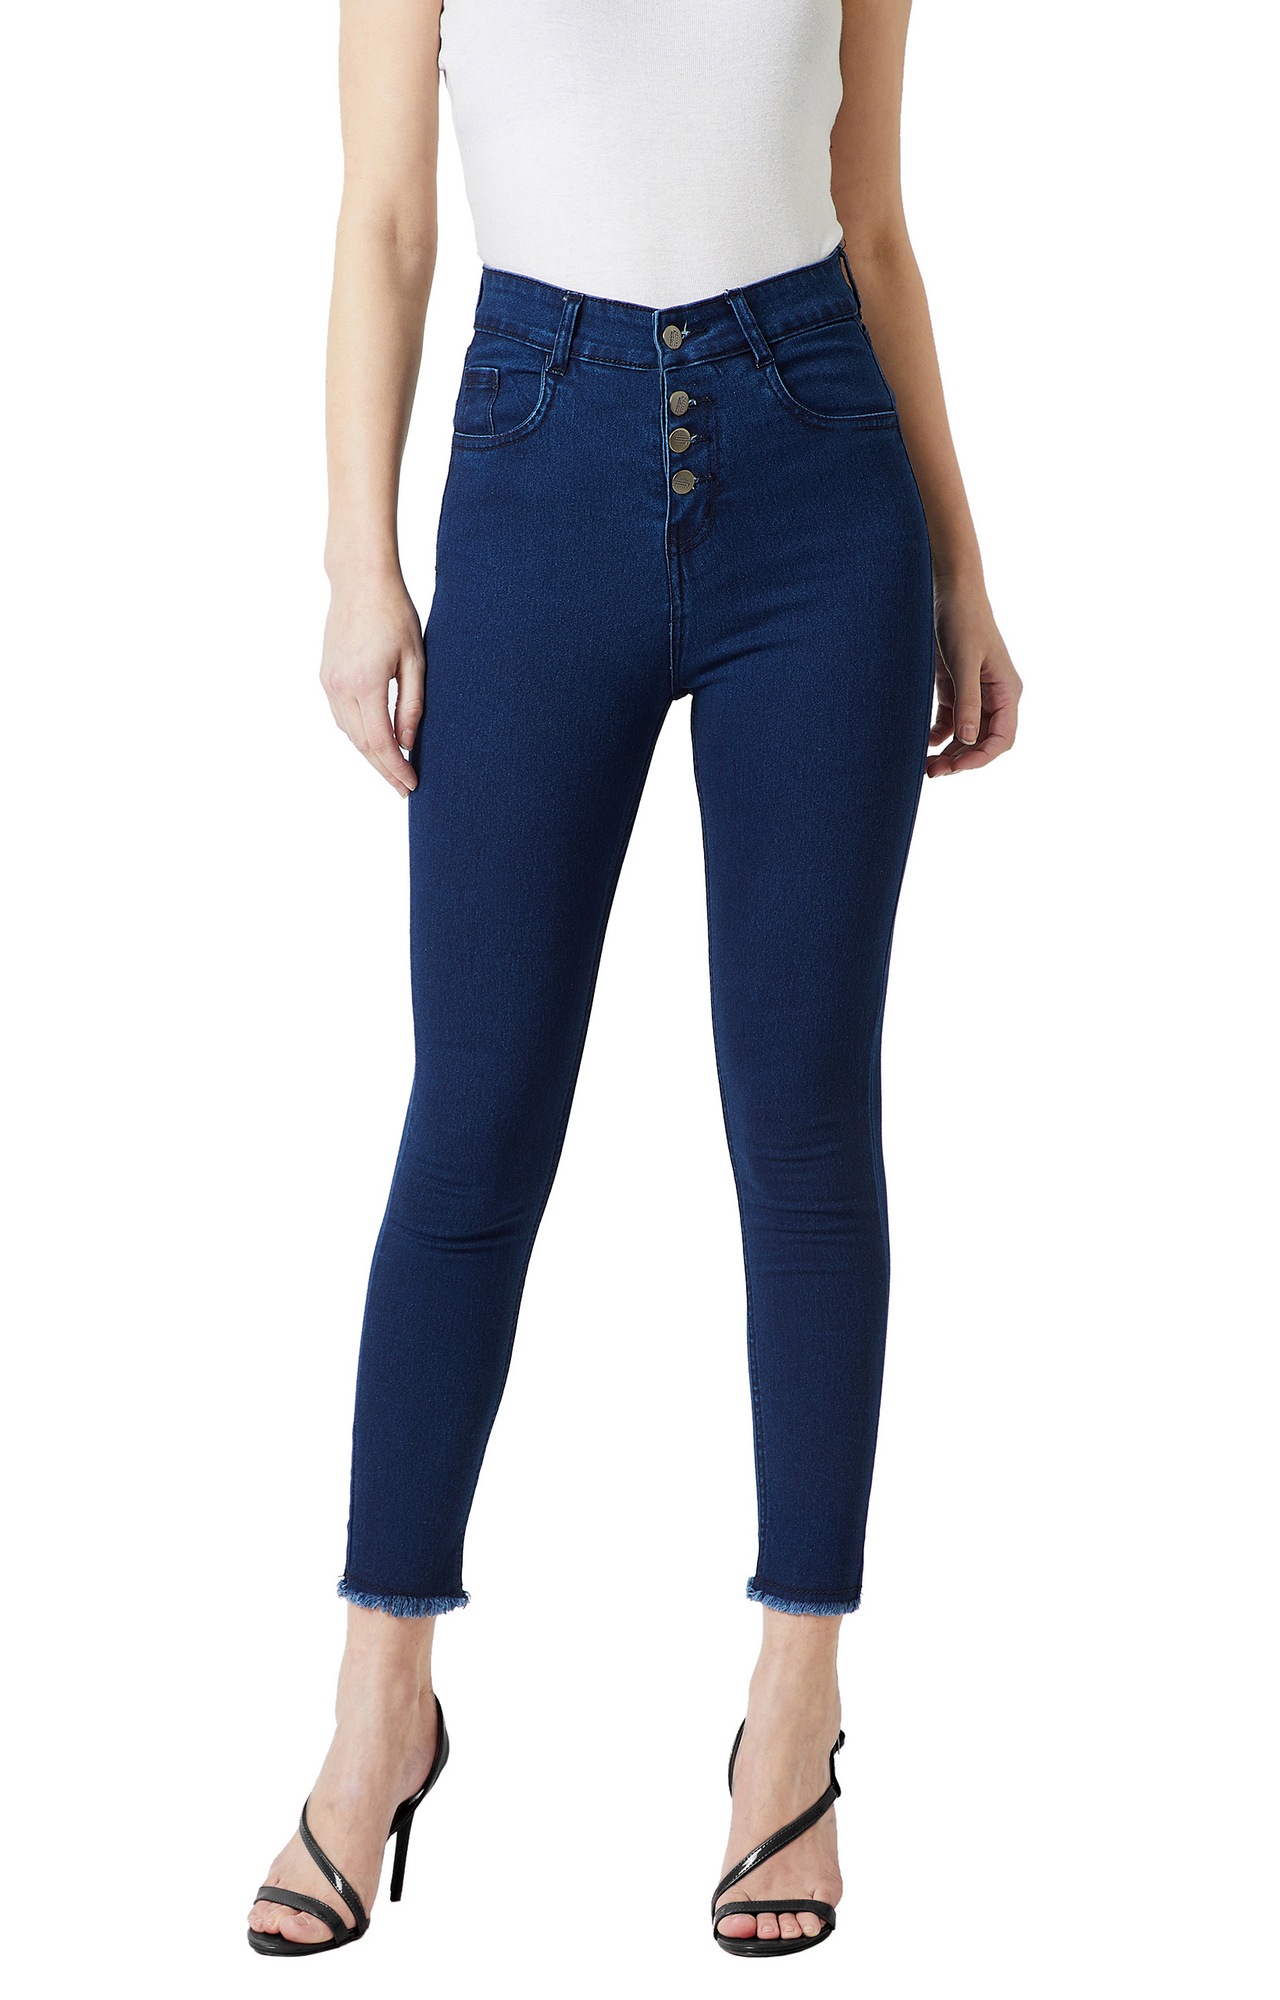 Navy Blue Solid Tapered Jeans